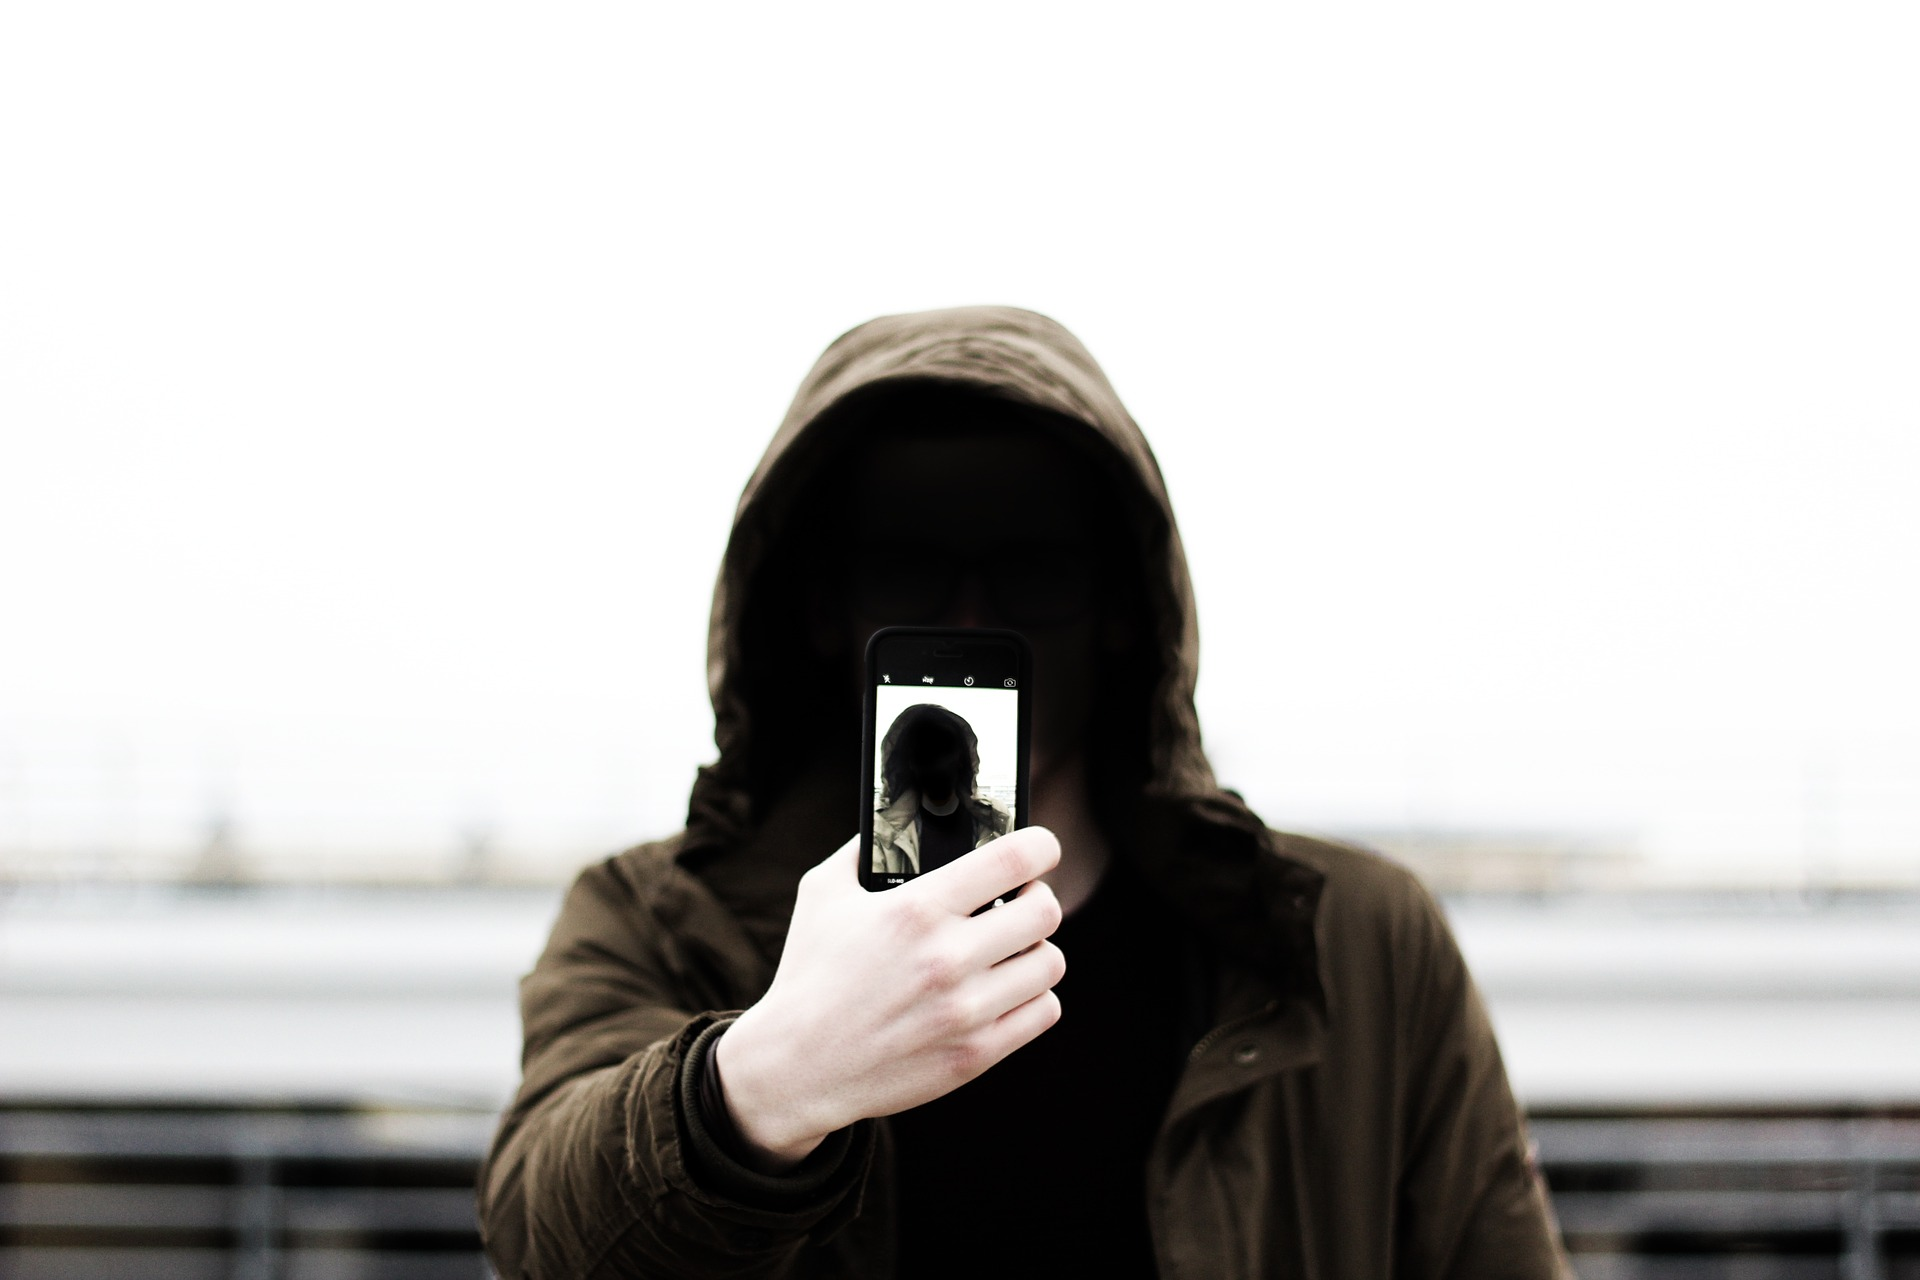 Photo-is it legal to record someone without their consent